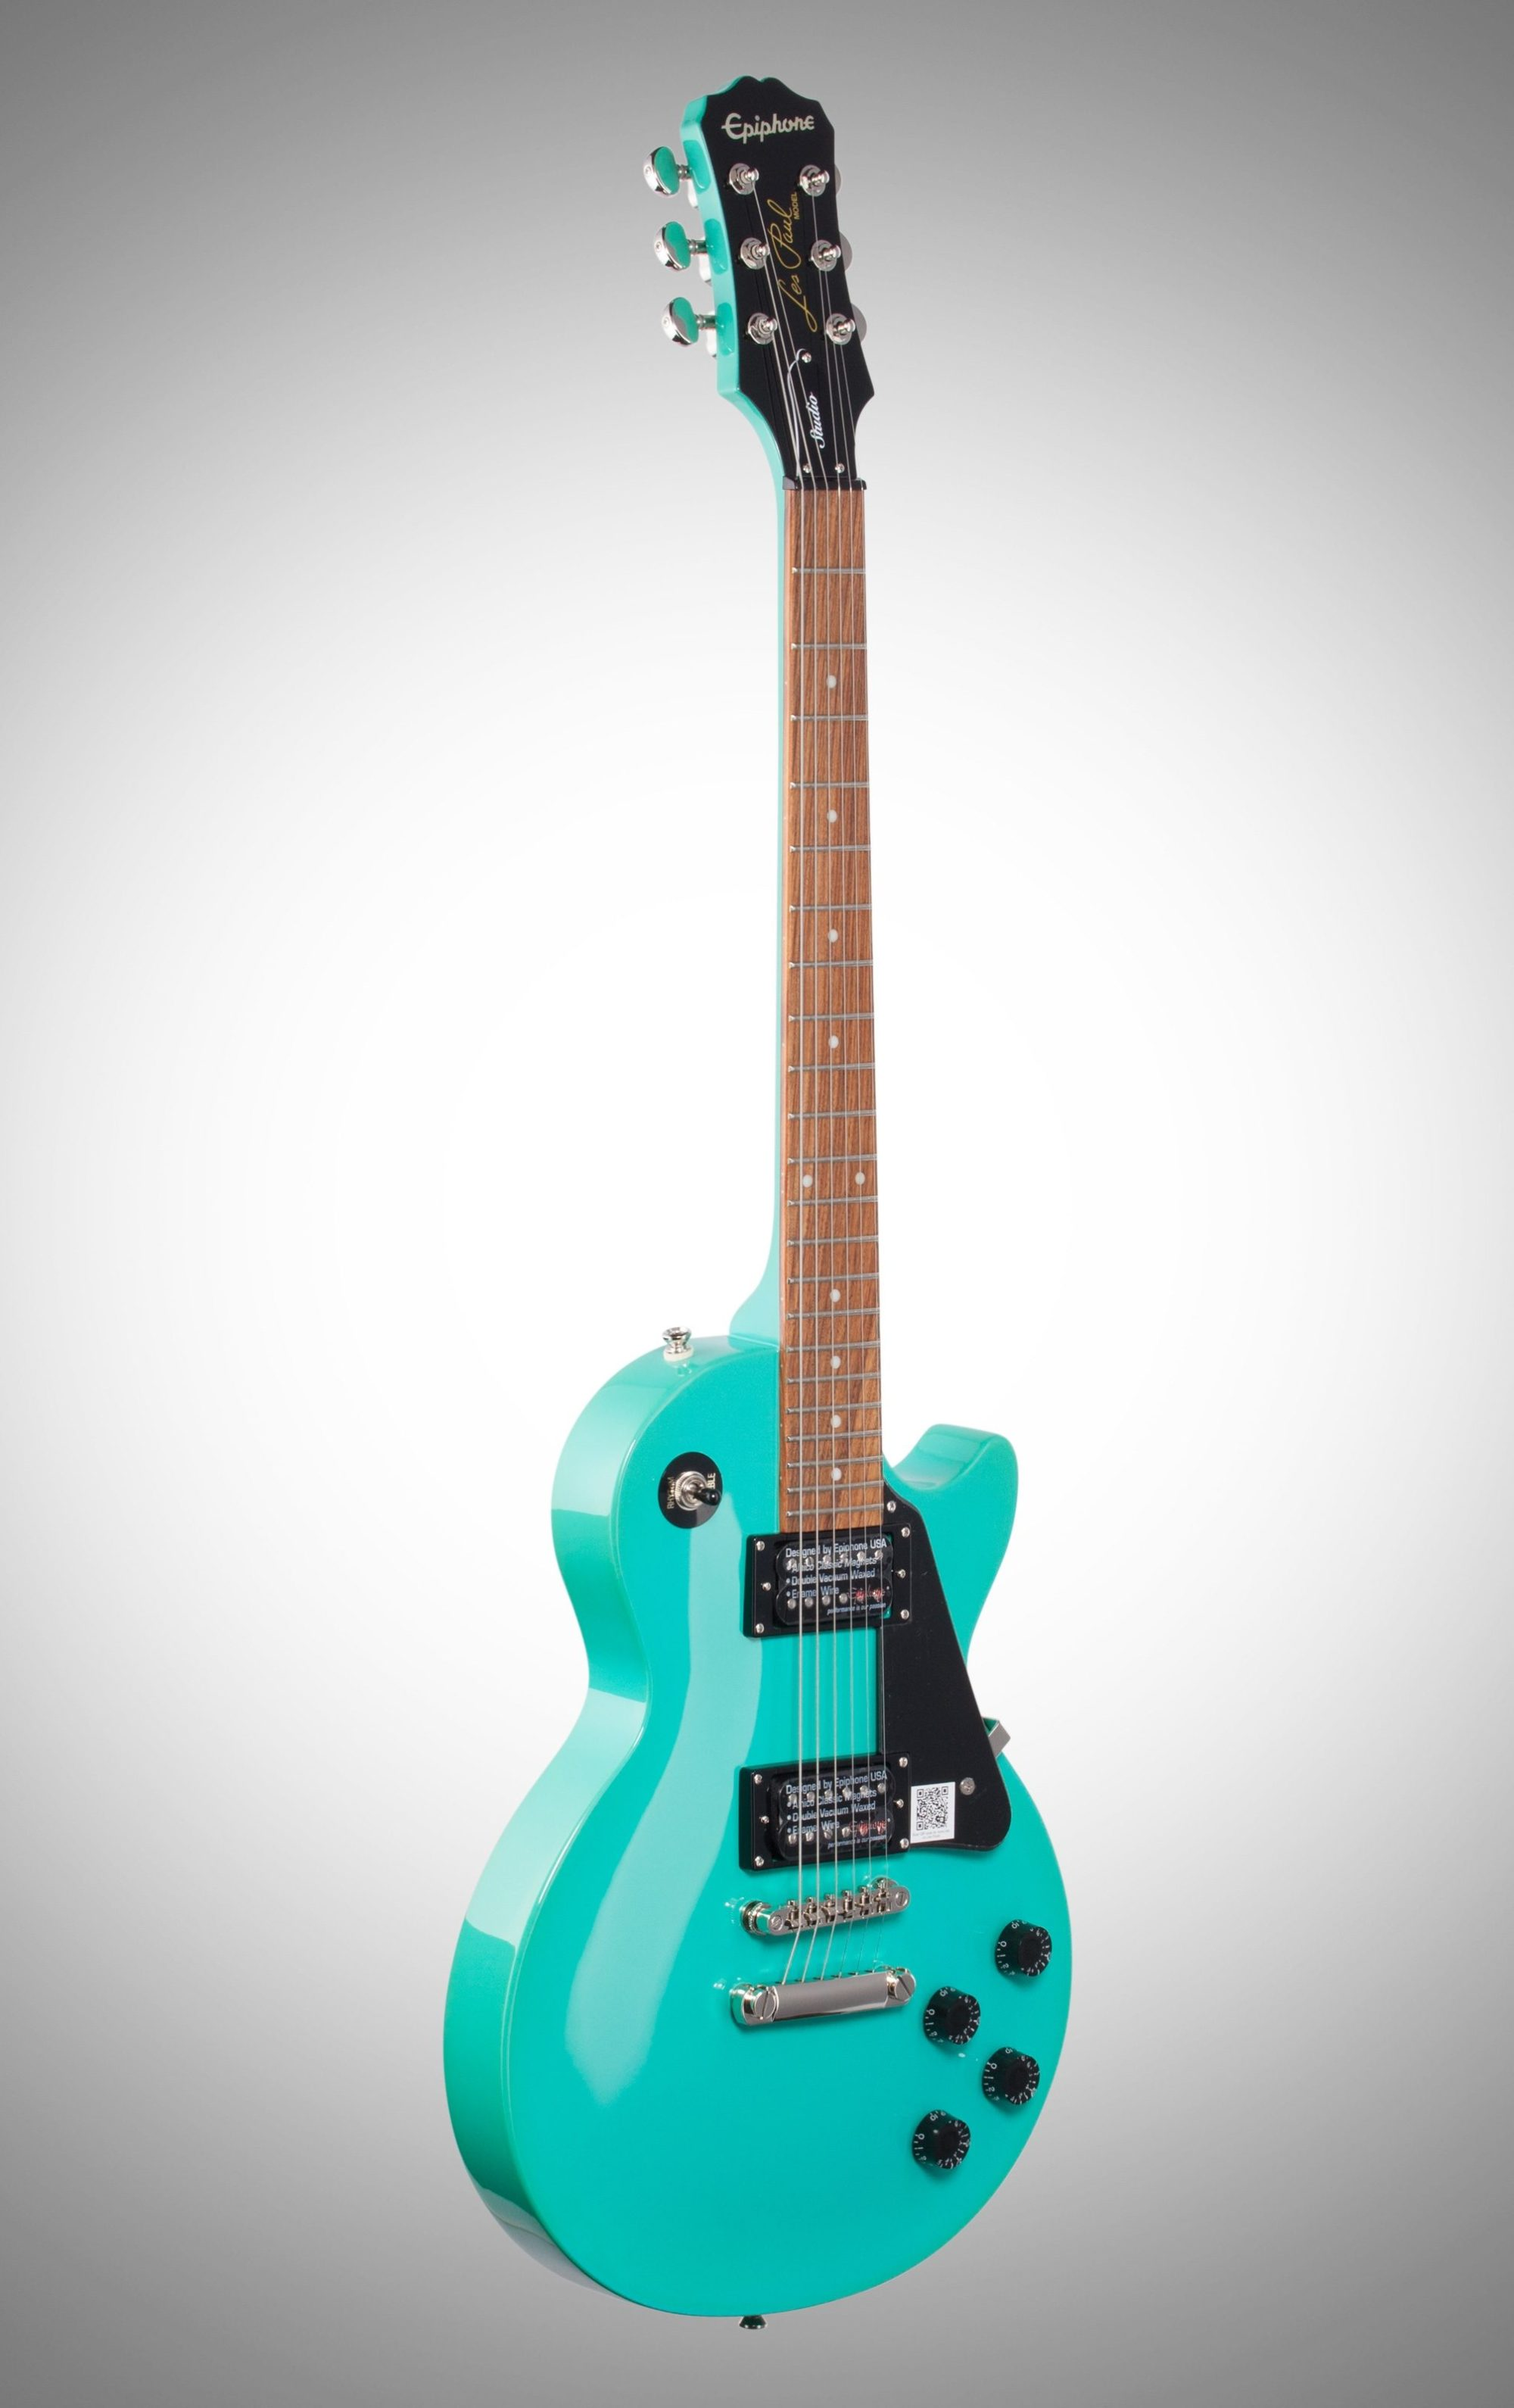 hight resolution of  epiphone les paul studio electric guitar turquoise body left front